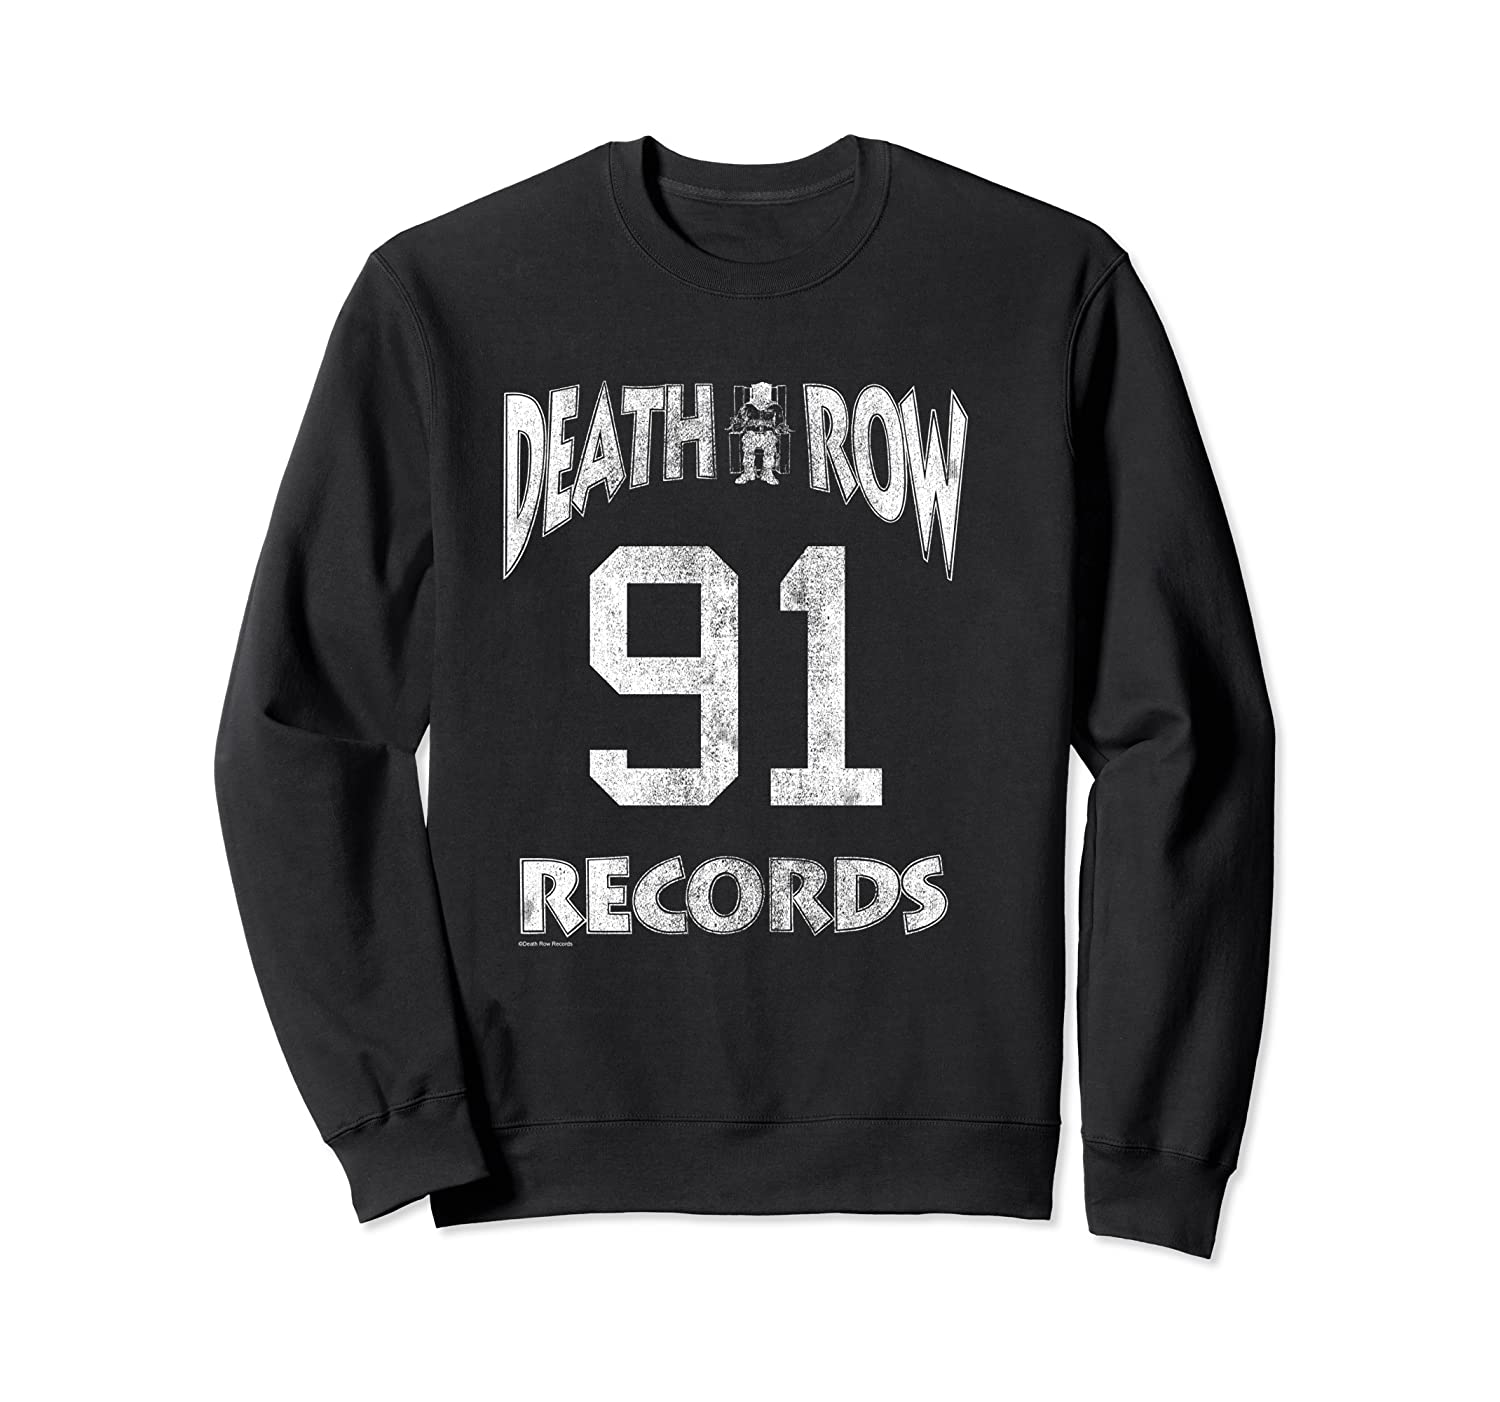 Death Row Records Athletic 91 Distressed T-shirt Crewneck Sweater